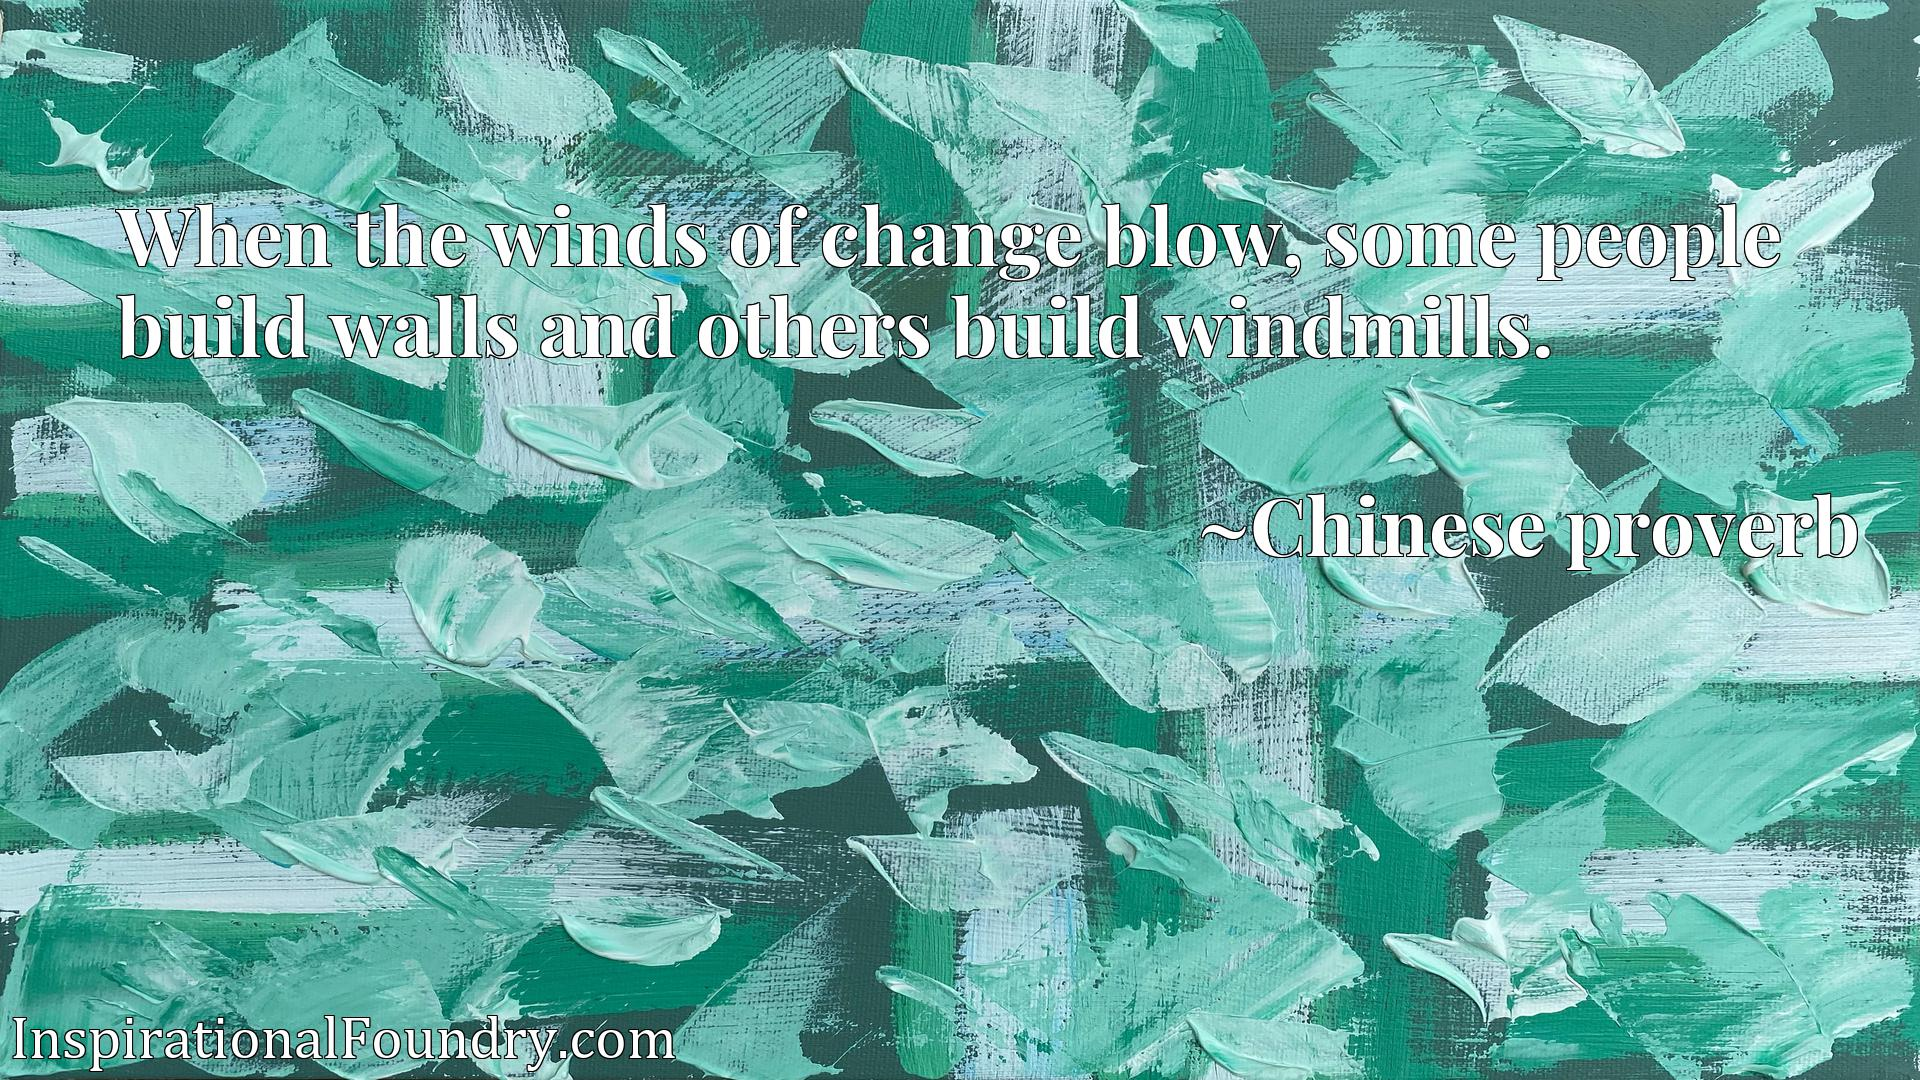 When the winds of change blow, some people build walls and others build windmills.